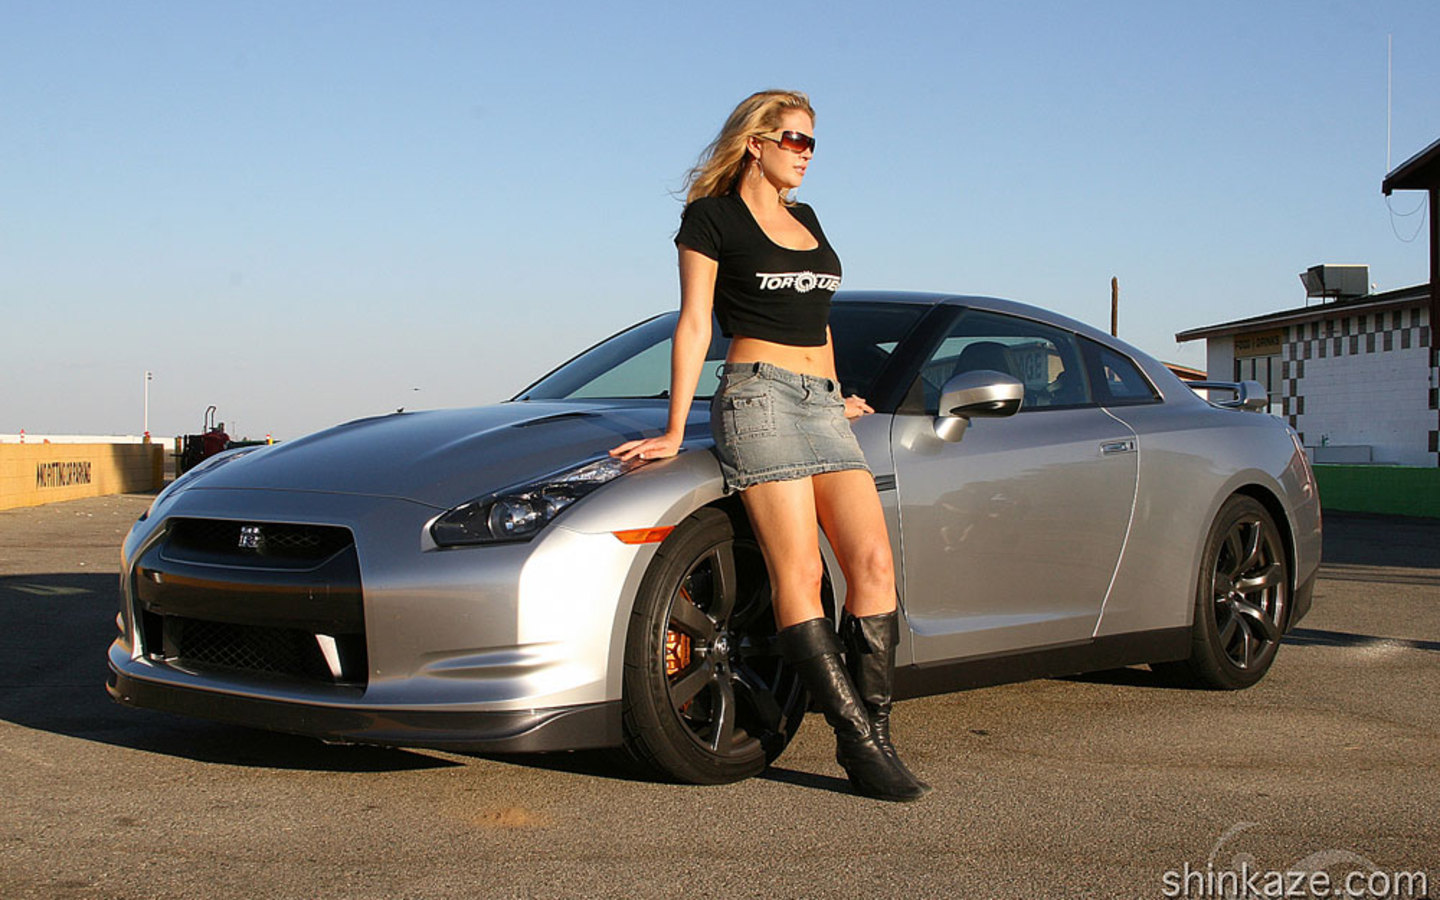 hot girl with nissan - photo #11